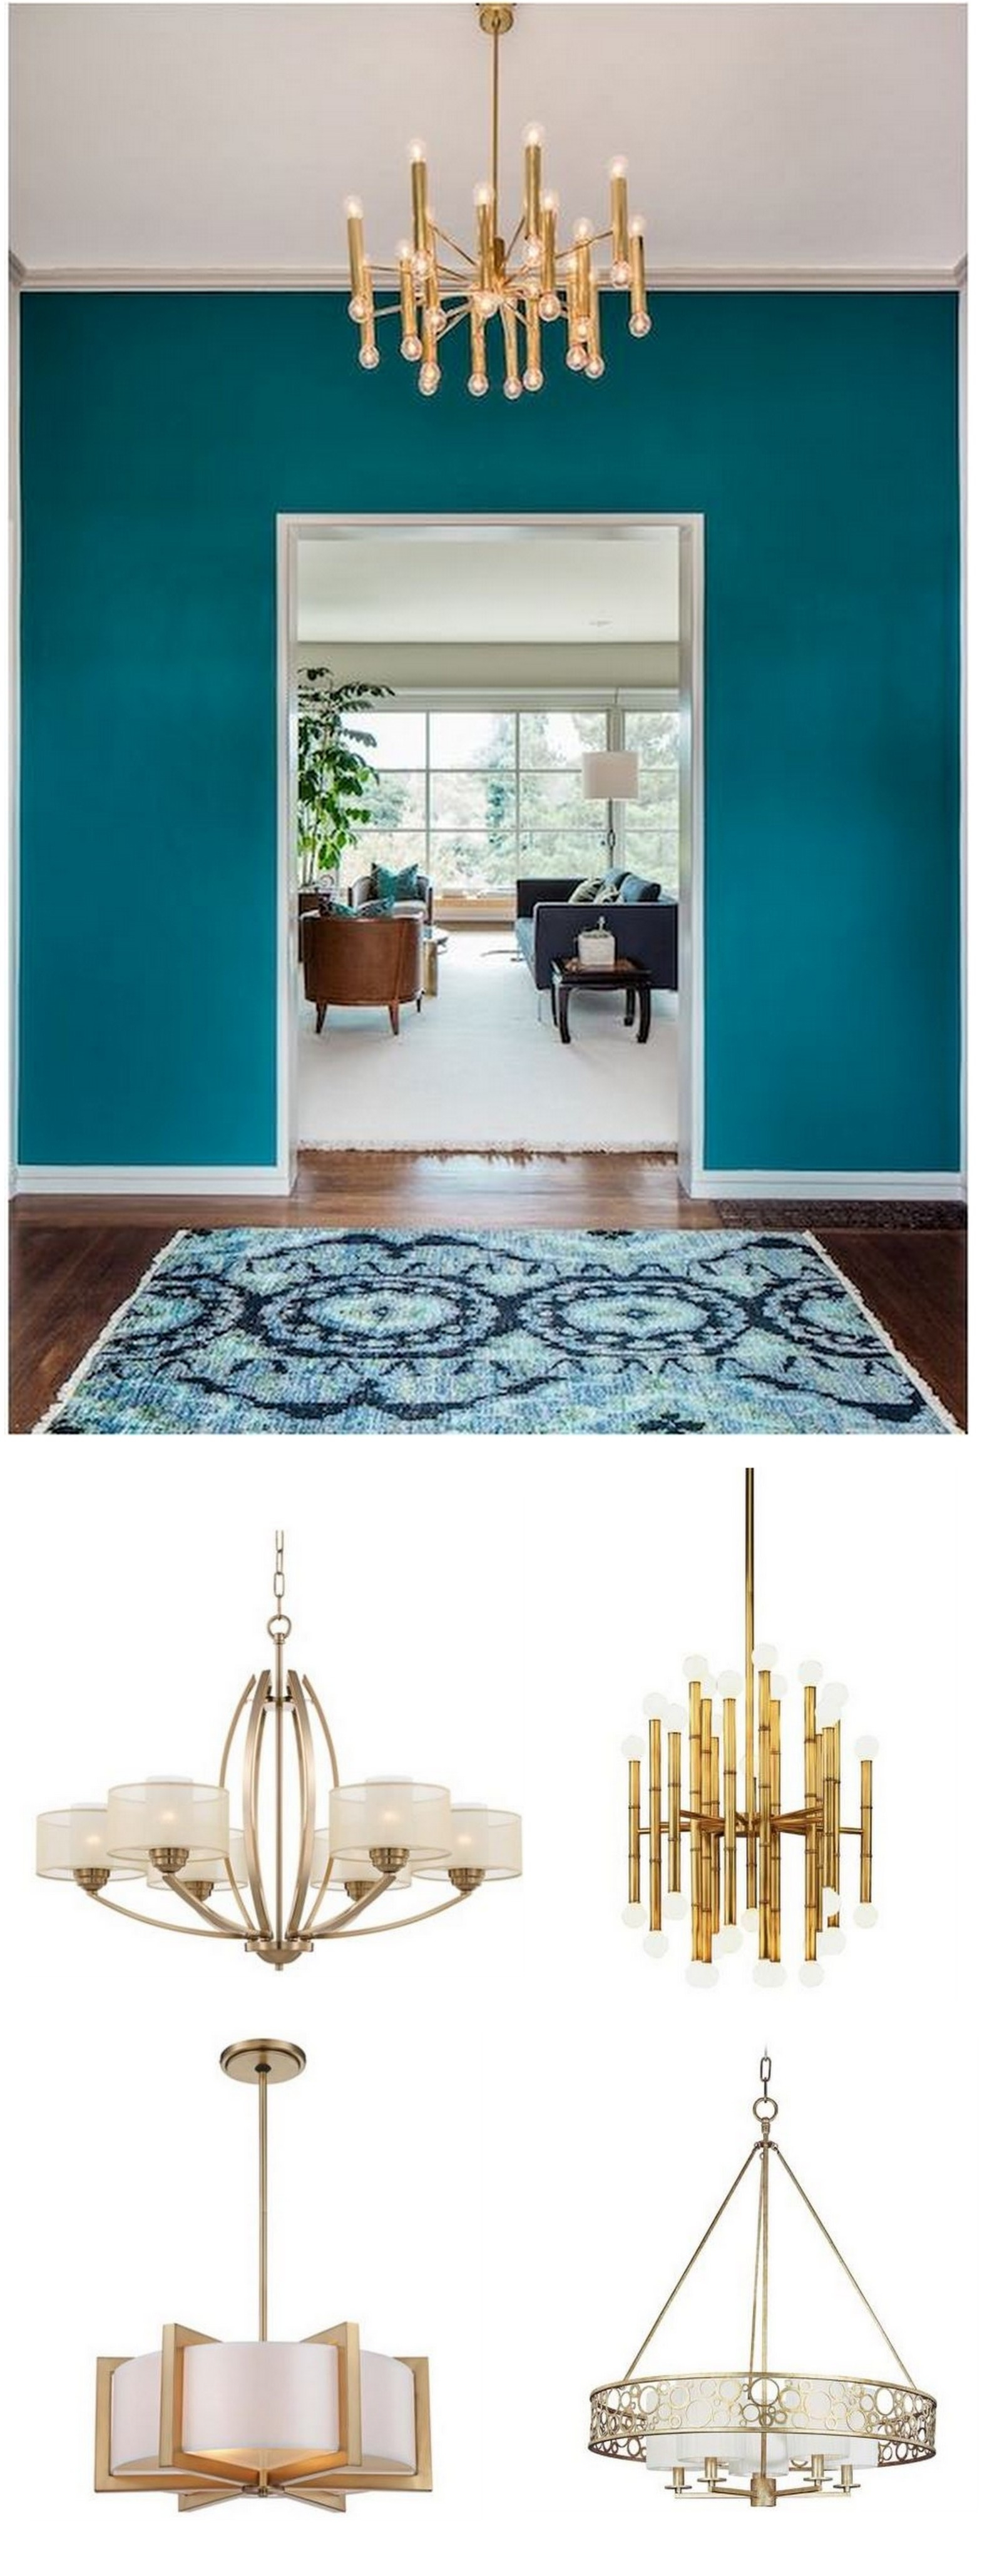 Golden And Glamorous Lighting Home Decorating Blog Community Throughout Turquoise And Gold Chandeliers (Image 7 of 13)